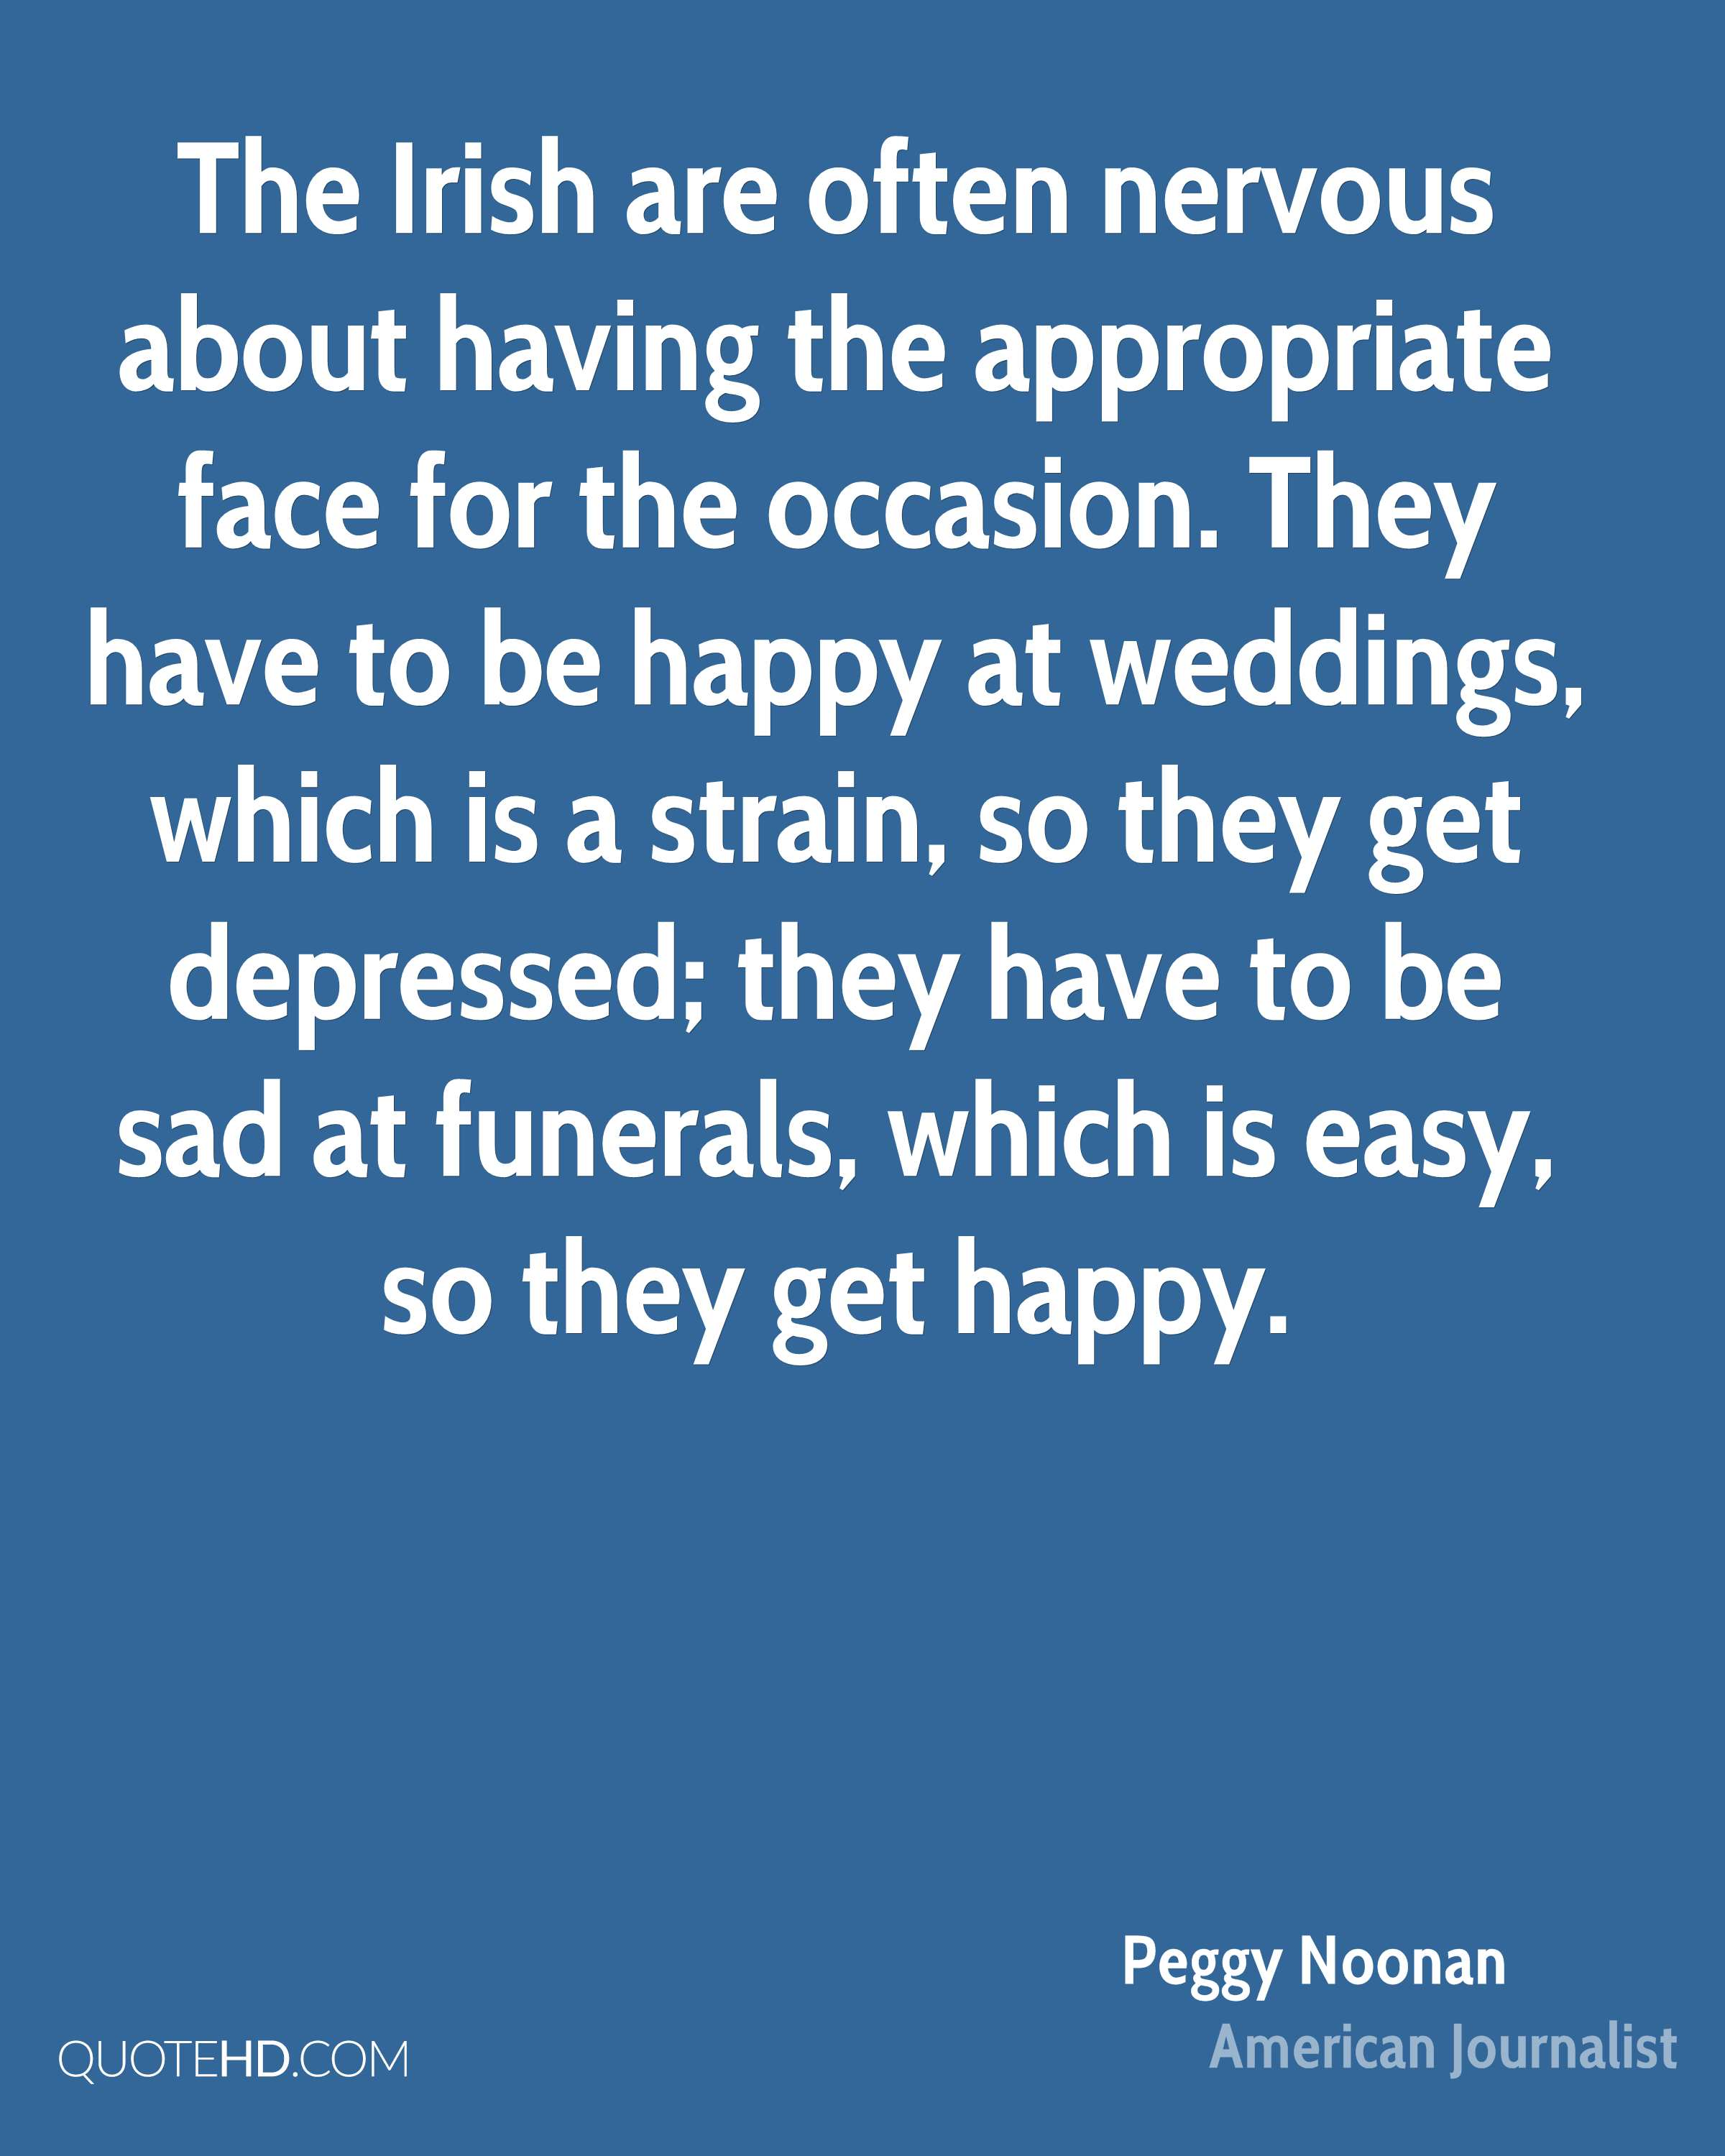 The Irish are often nervous about having the appropriate face for the occasion. They have to be happy at weddings, which is a strain, so they get depressed; they have to be sad at funerals, which is easy, so they get happy.